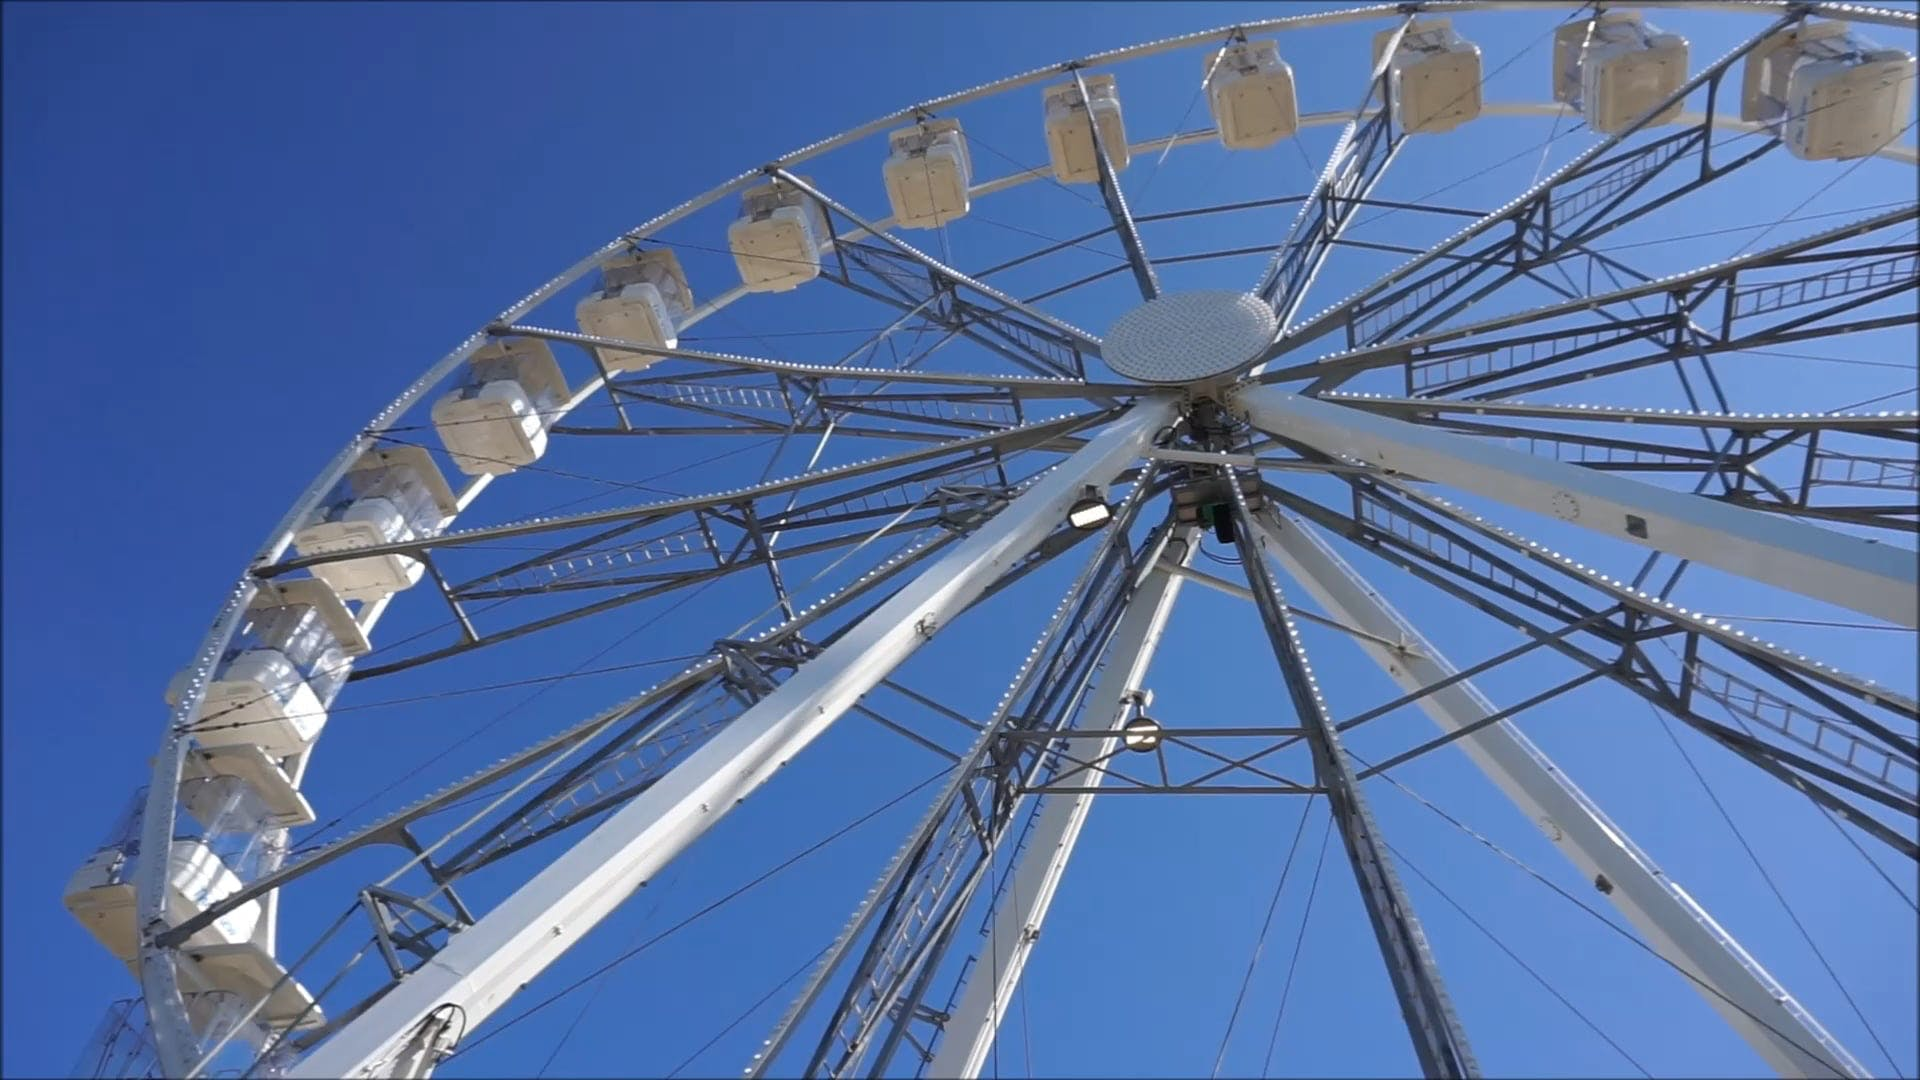 Ferris Wheel At Close-Up View